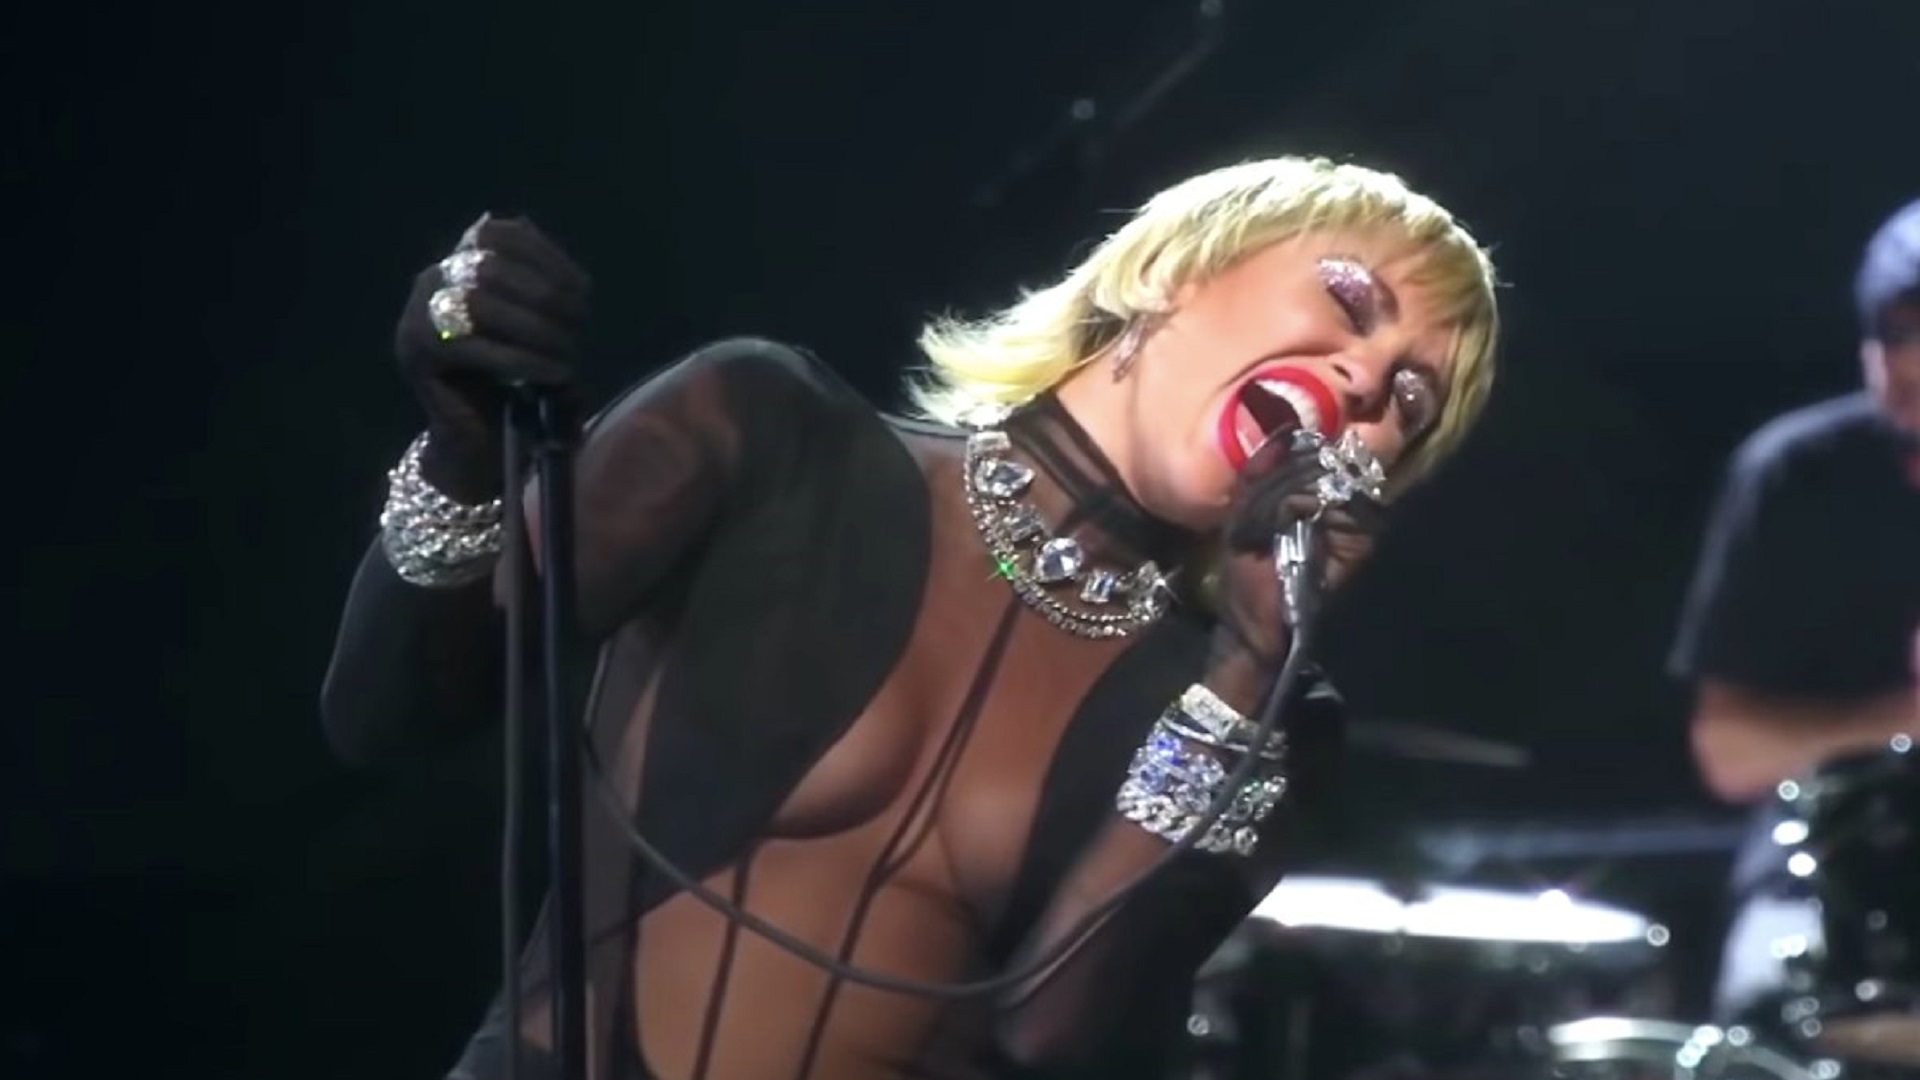 Vea a Miley Cyrus versionando 'Heart of Glass' de Blondie